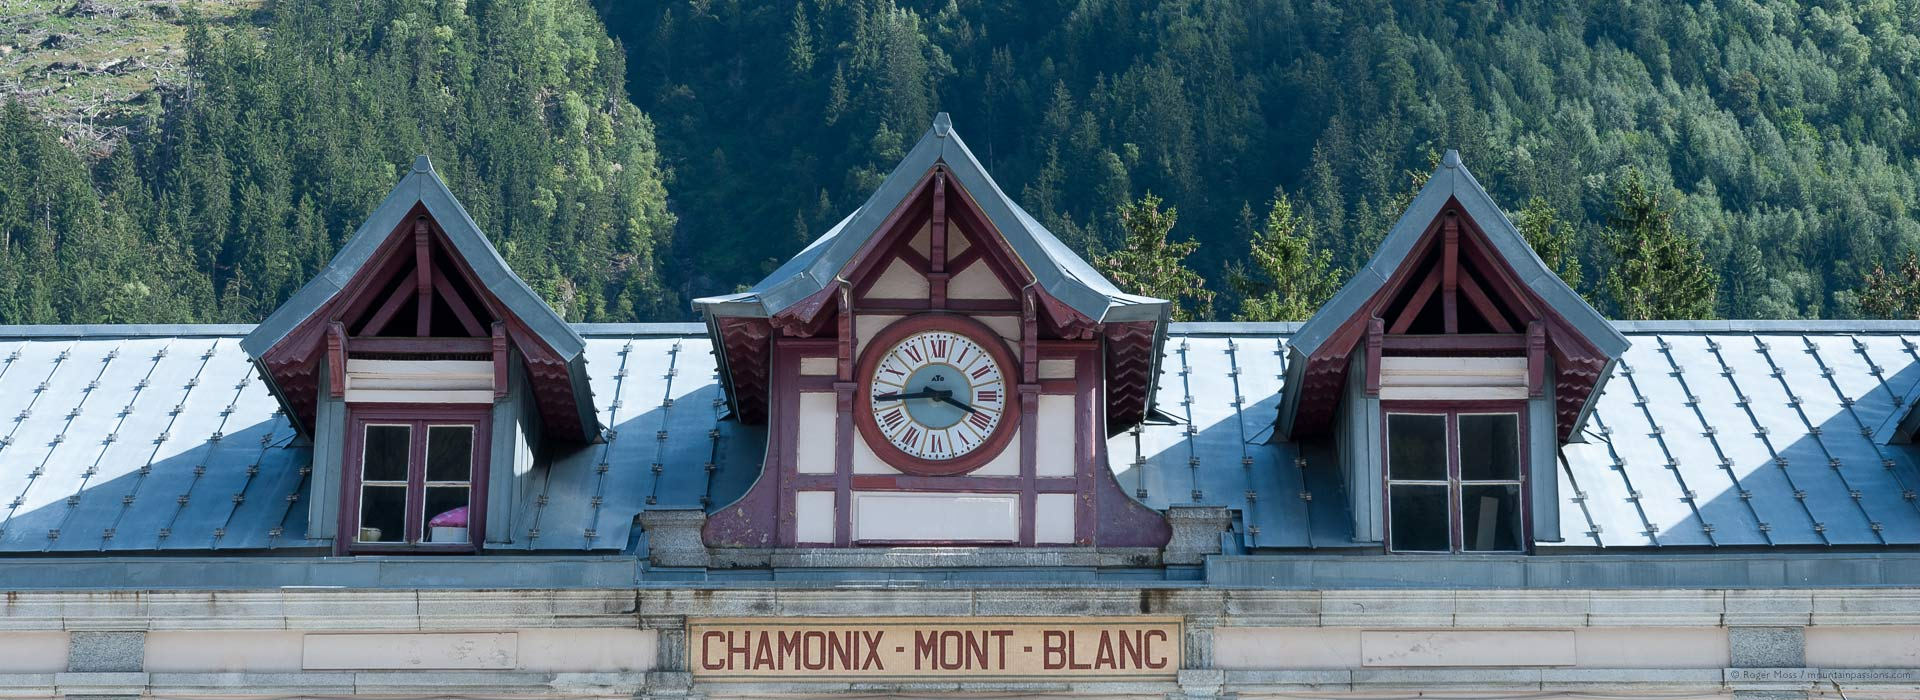 Roof of Chamonix Mont-Blanc Gare SNCF, French Alps, in summer.